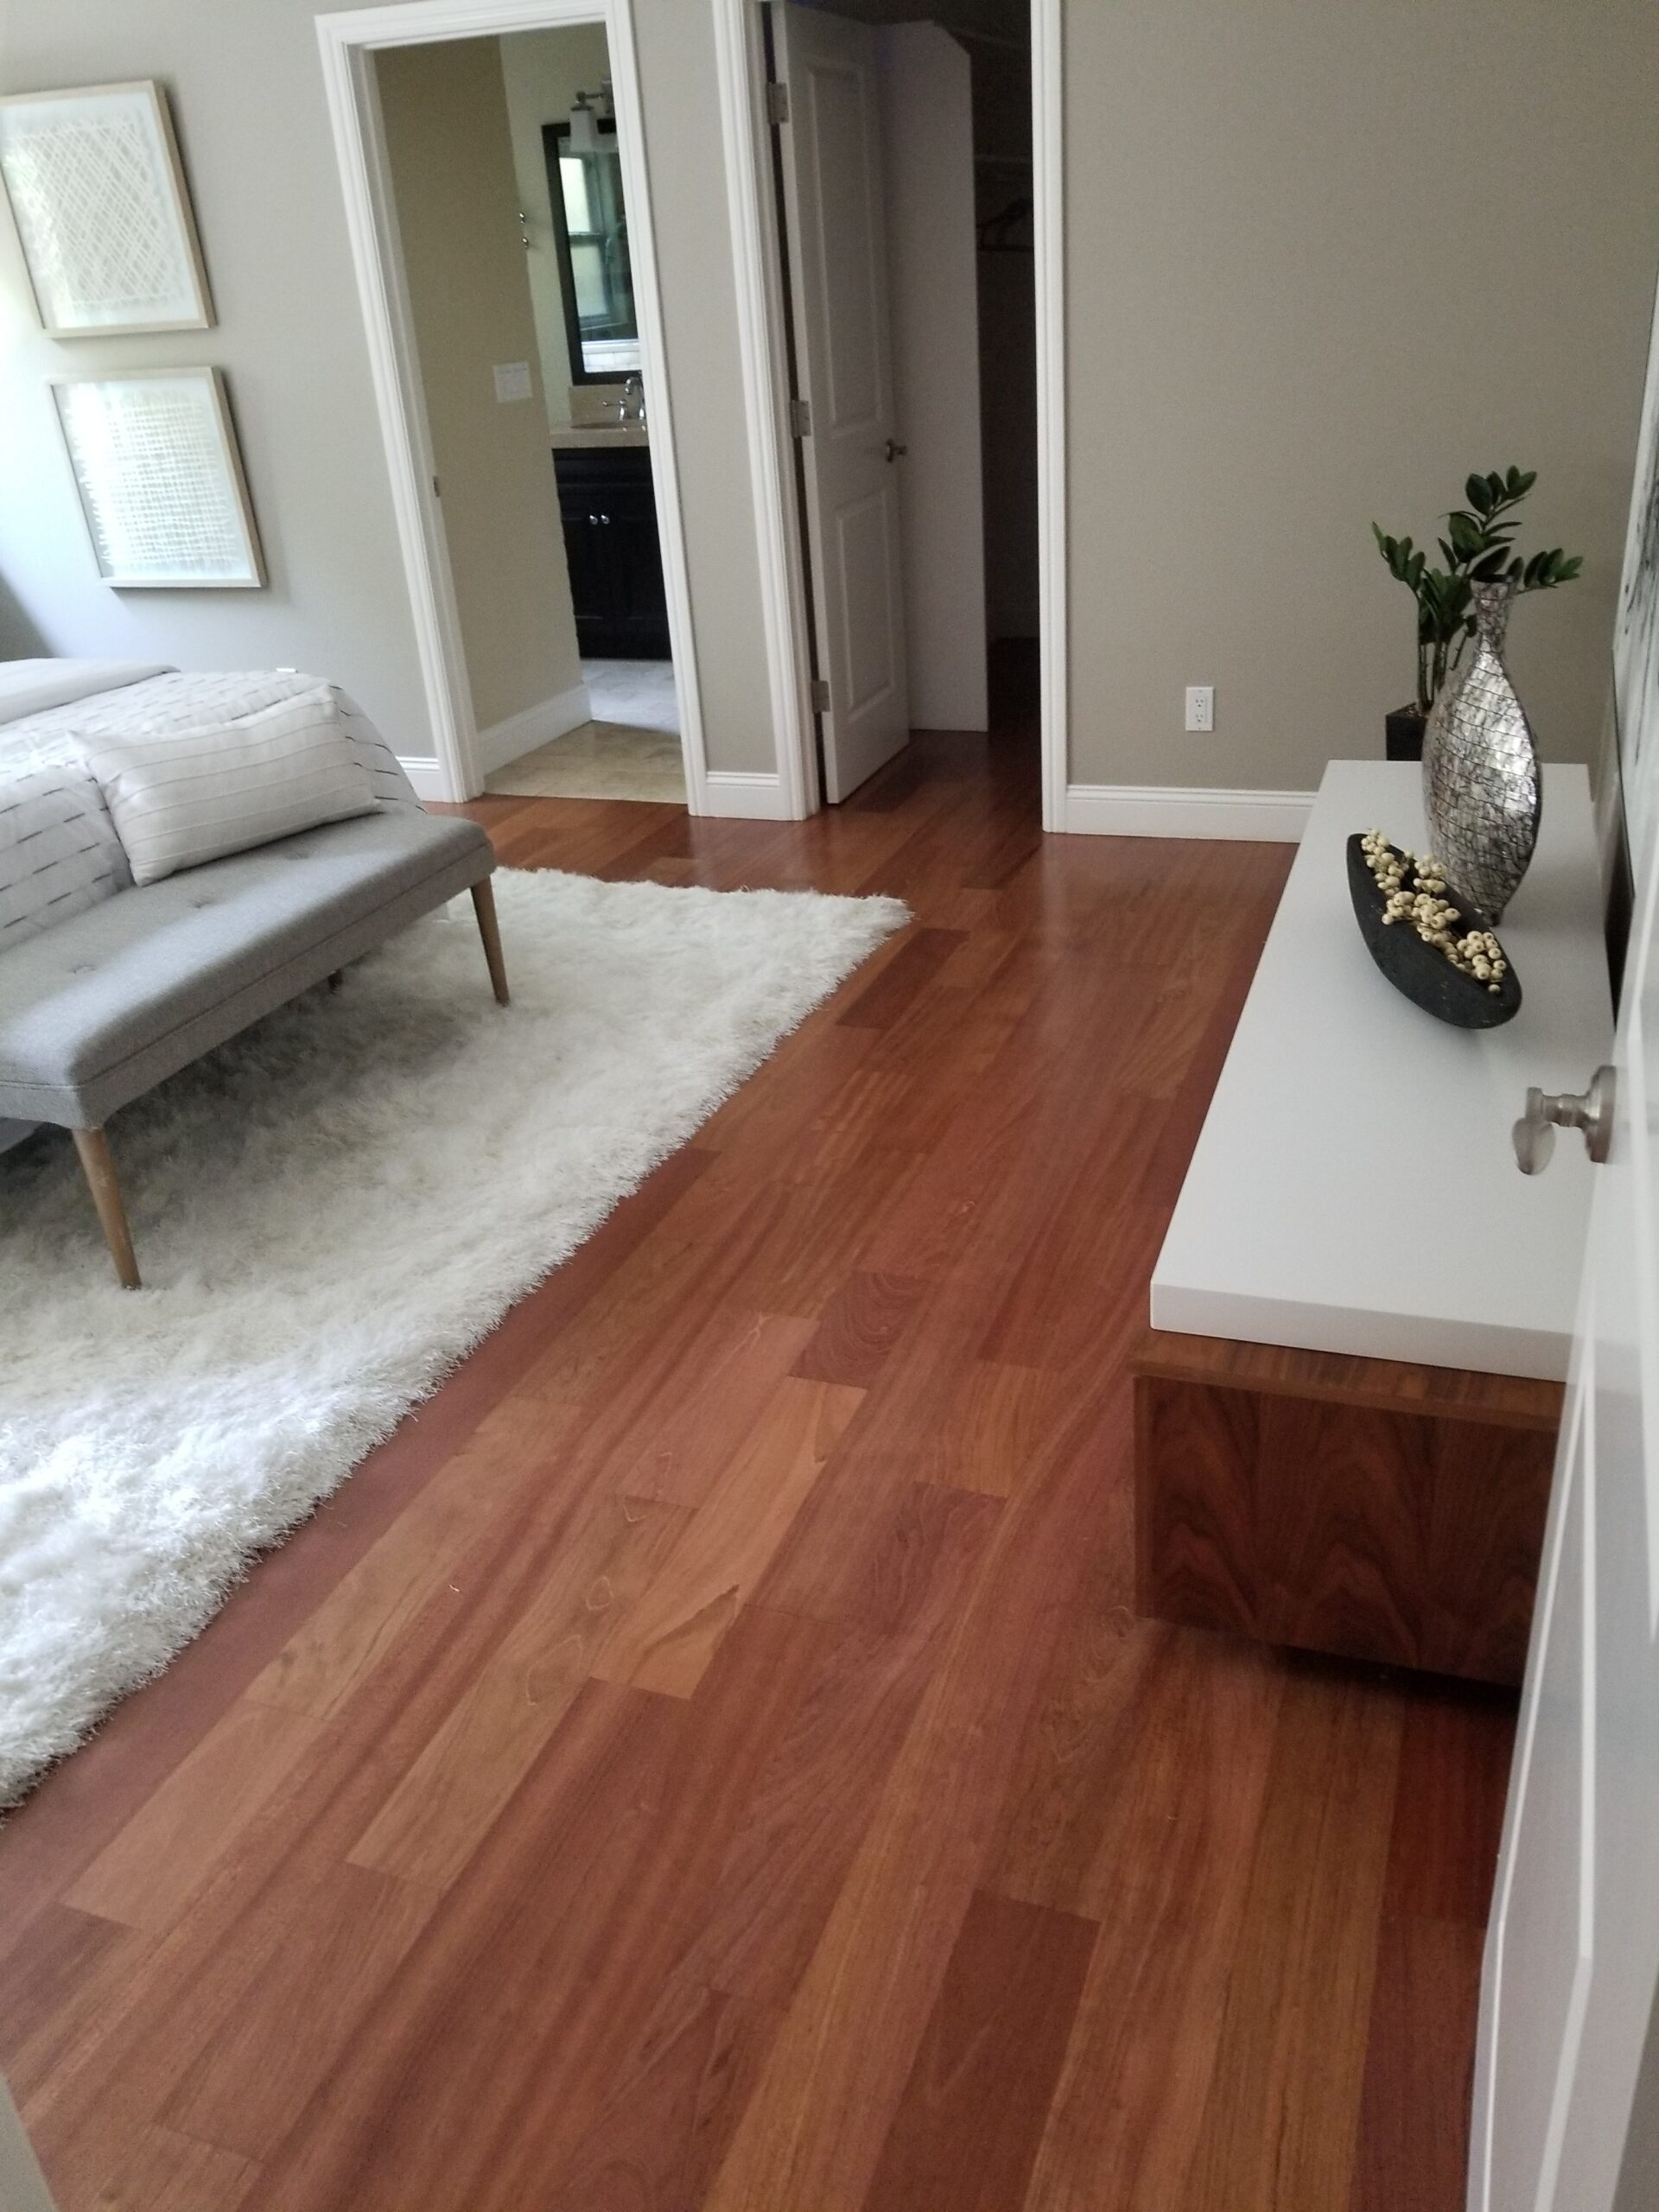 Shows results Sunnyvale master bedroom's Brazilian cherrywood flooring refinished.